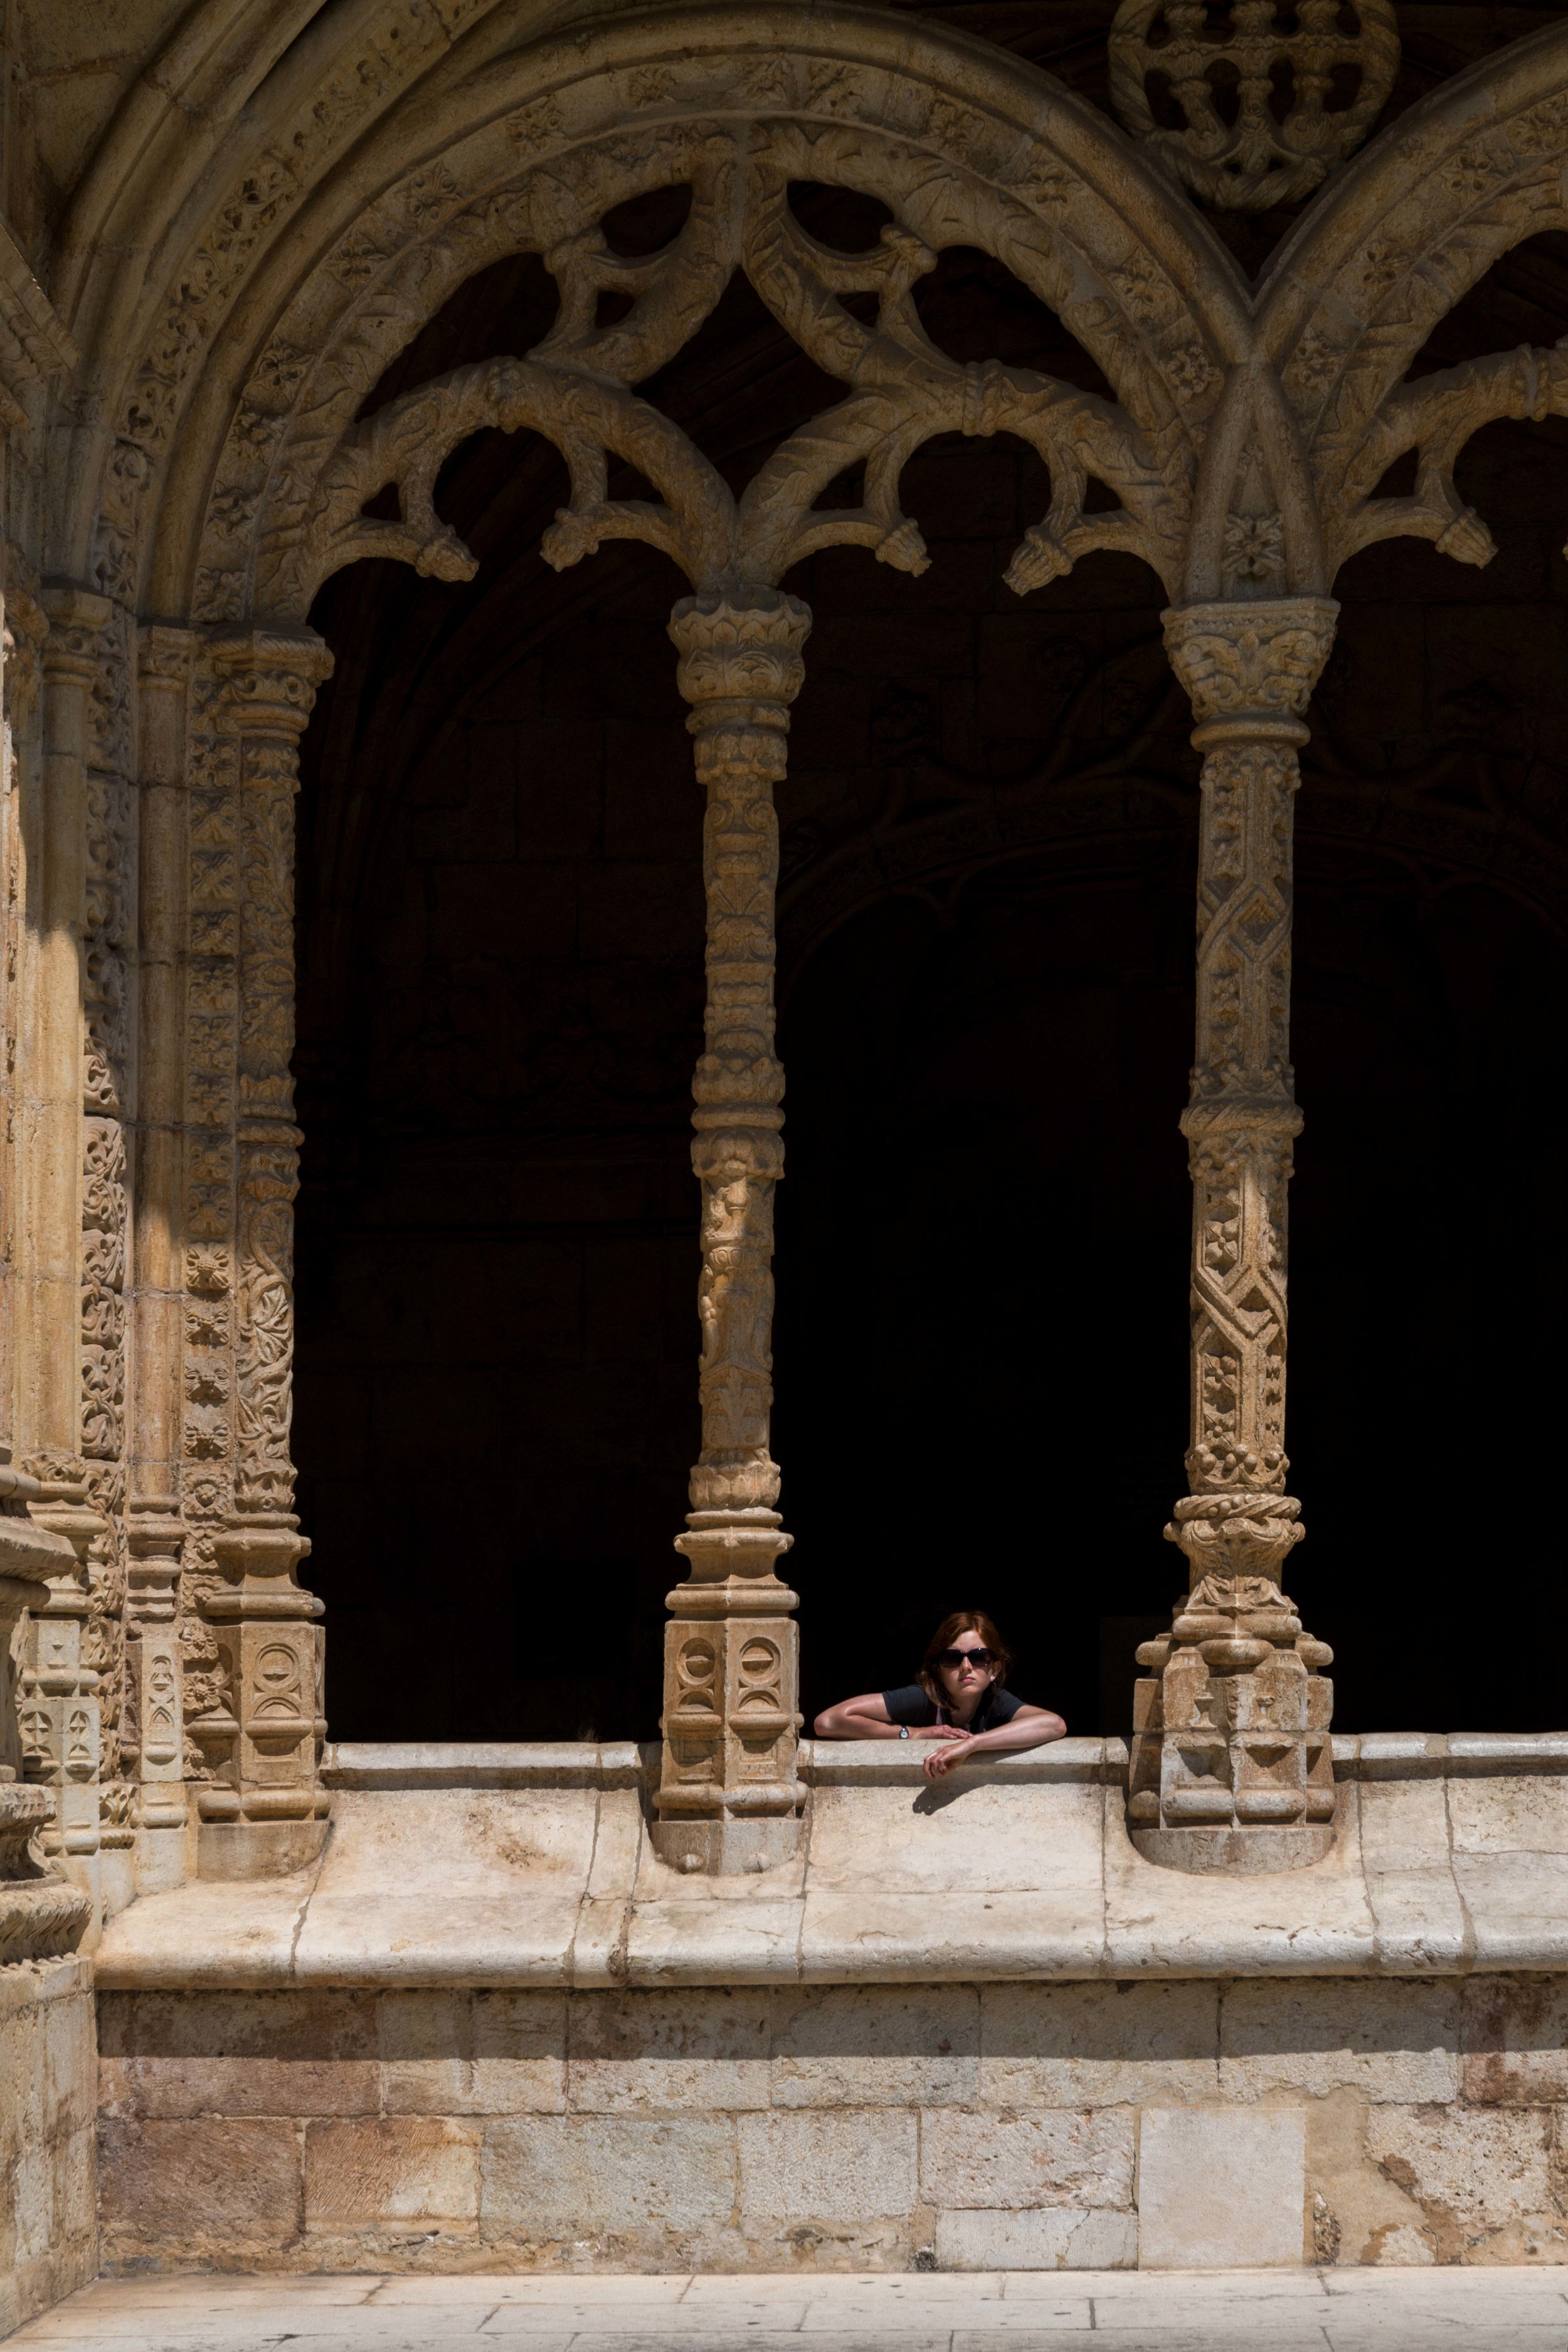 DSC01632_sRGB_CO_Relative_The Girl Lost Between the Columns.jpg